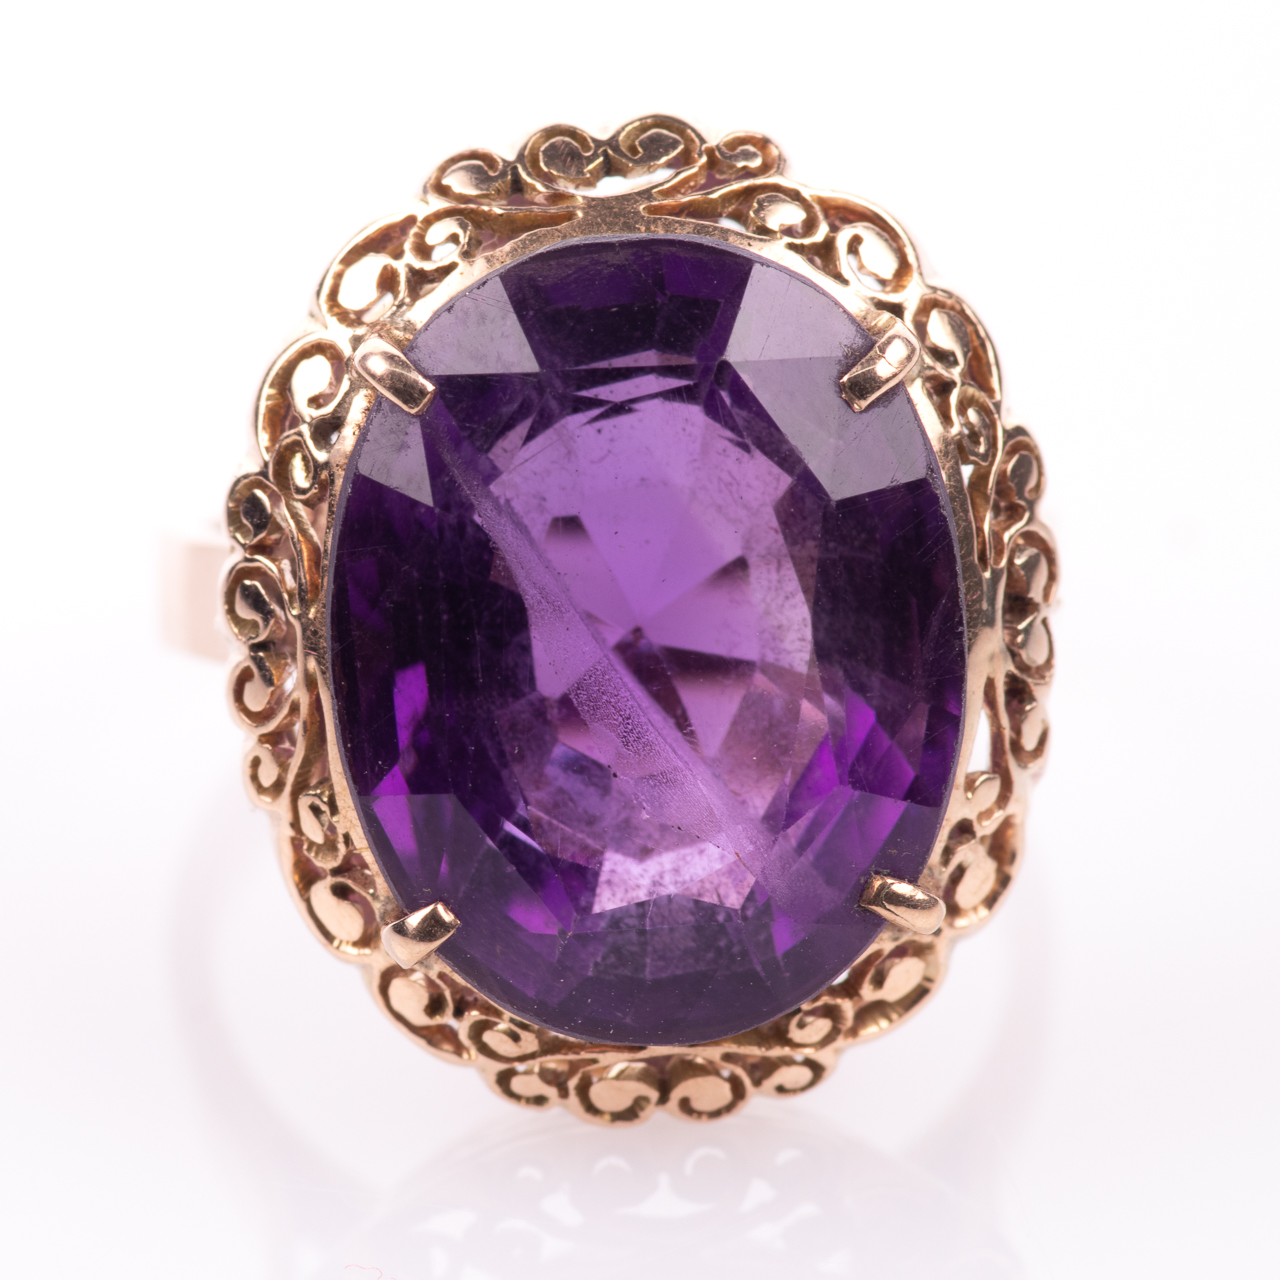 14ct Gold Amethyst Ring - Image 3 of 7